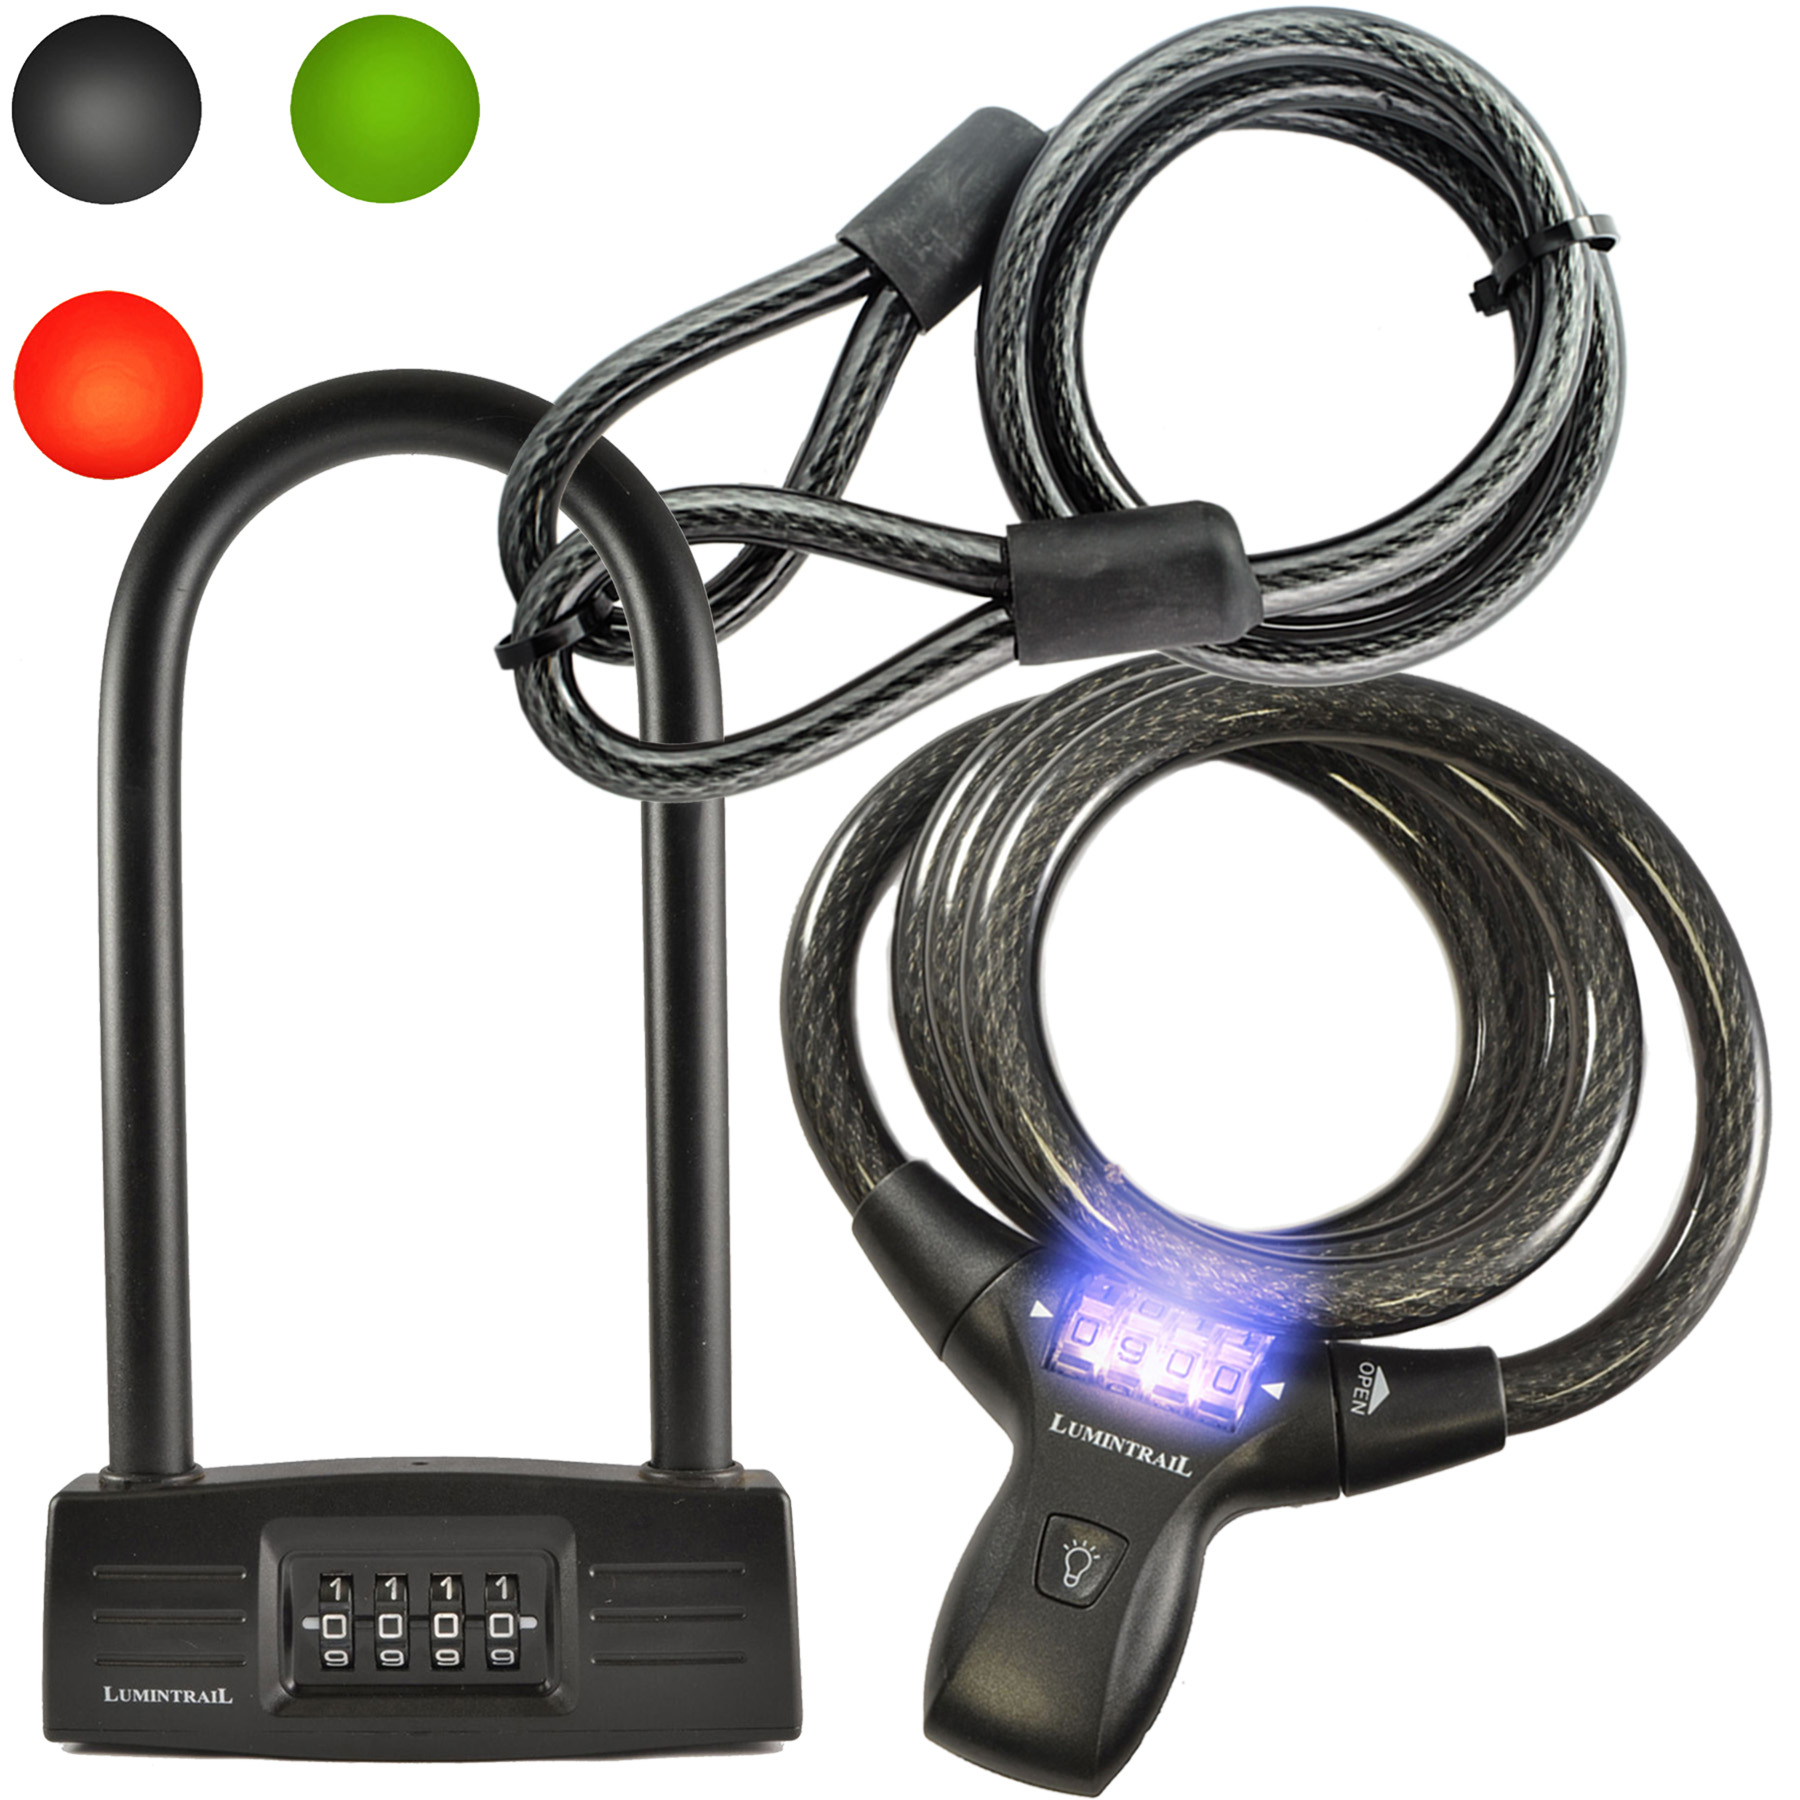 Lumintrail 14mm 4 Digit Combination Bike Cable Lock and Bicycle U-Lock Combo Package with 4 Foot Braided Steel Looped Security Cable